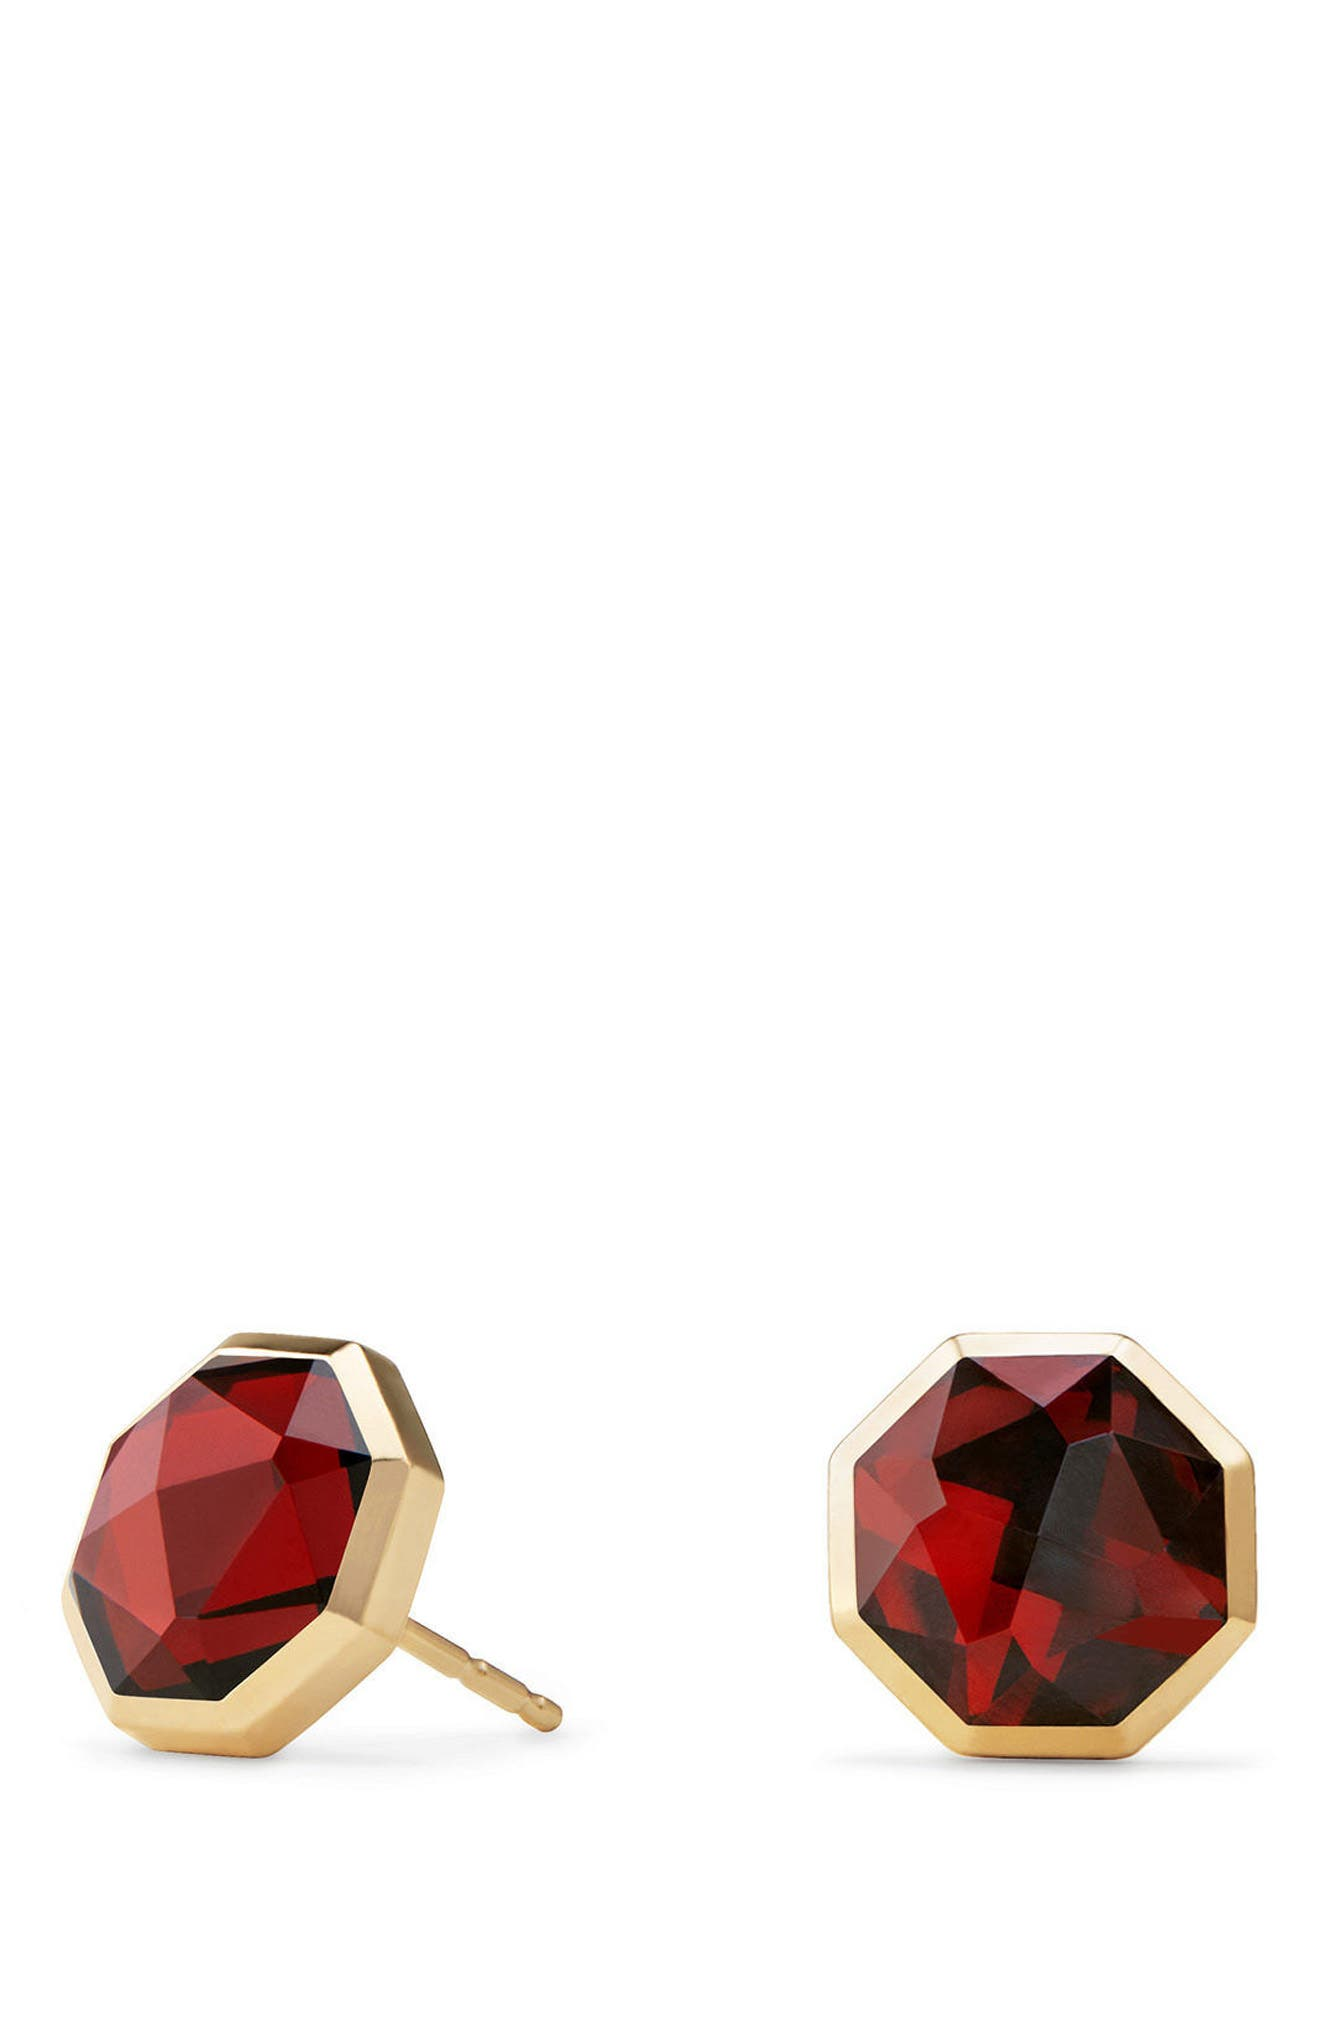 Guilin Octagon Earrings in 18K Gold,                         Main,                         color, YELLOW GOLD/ GARNET